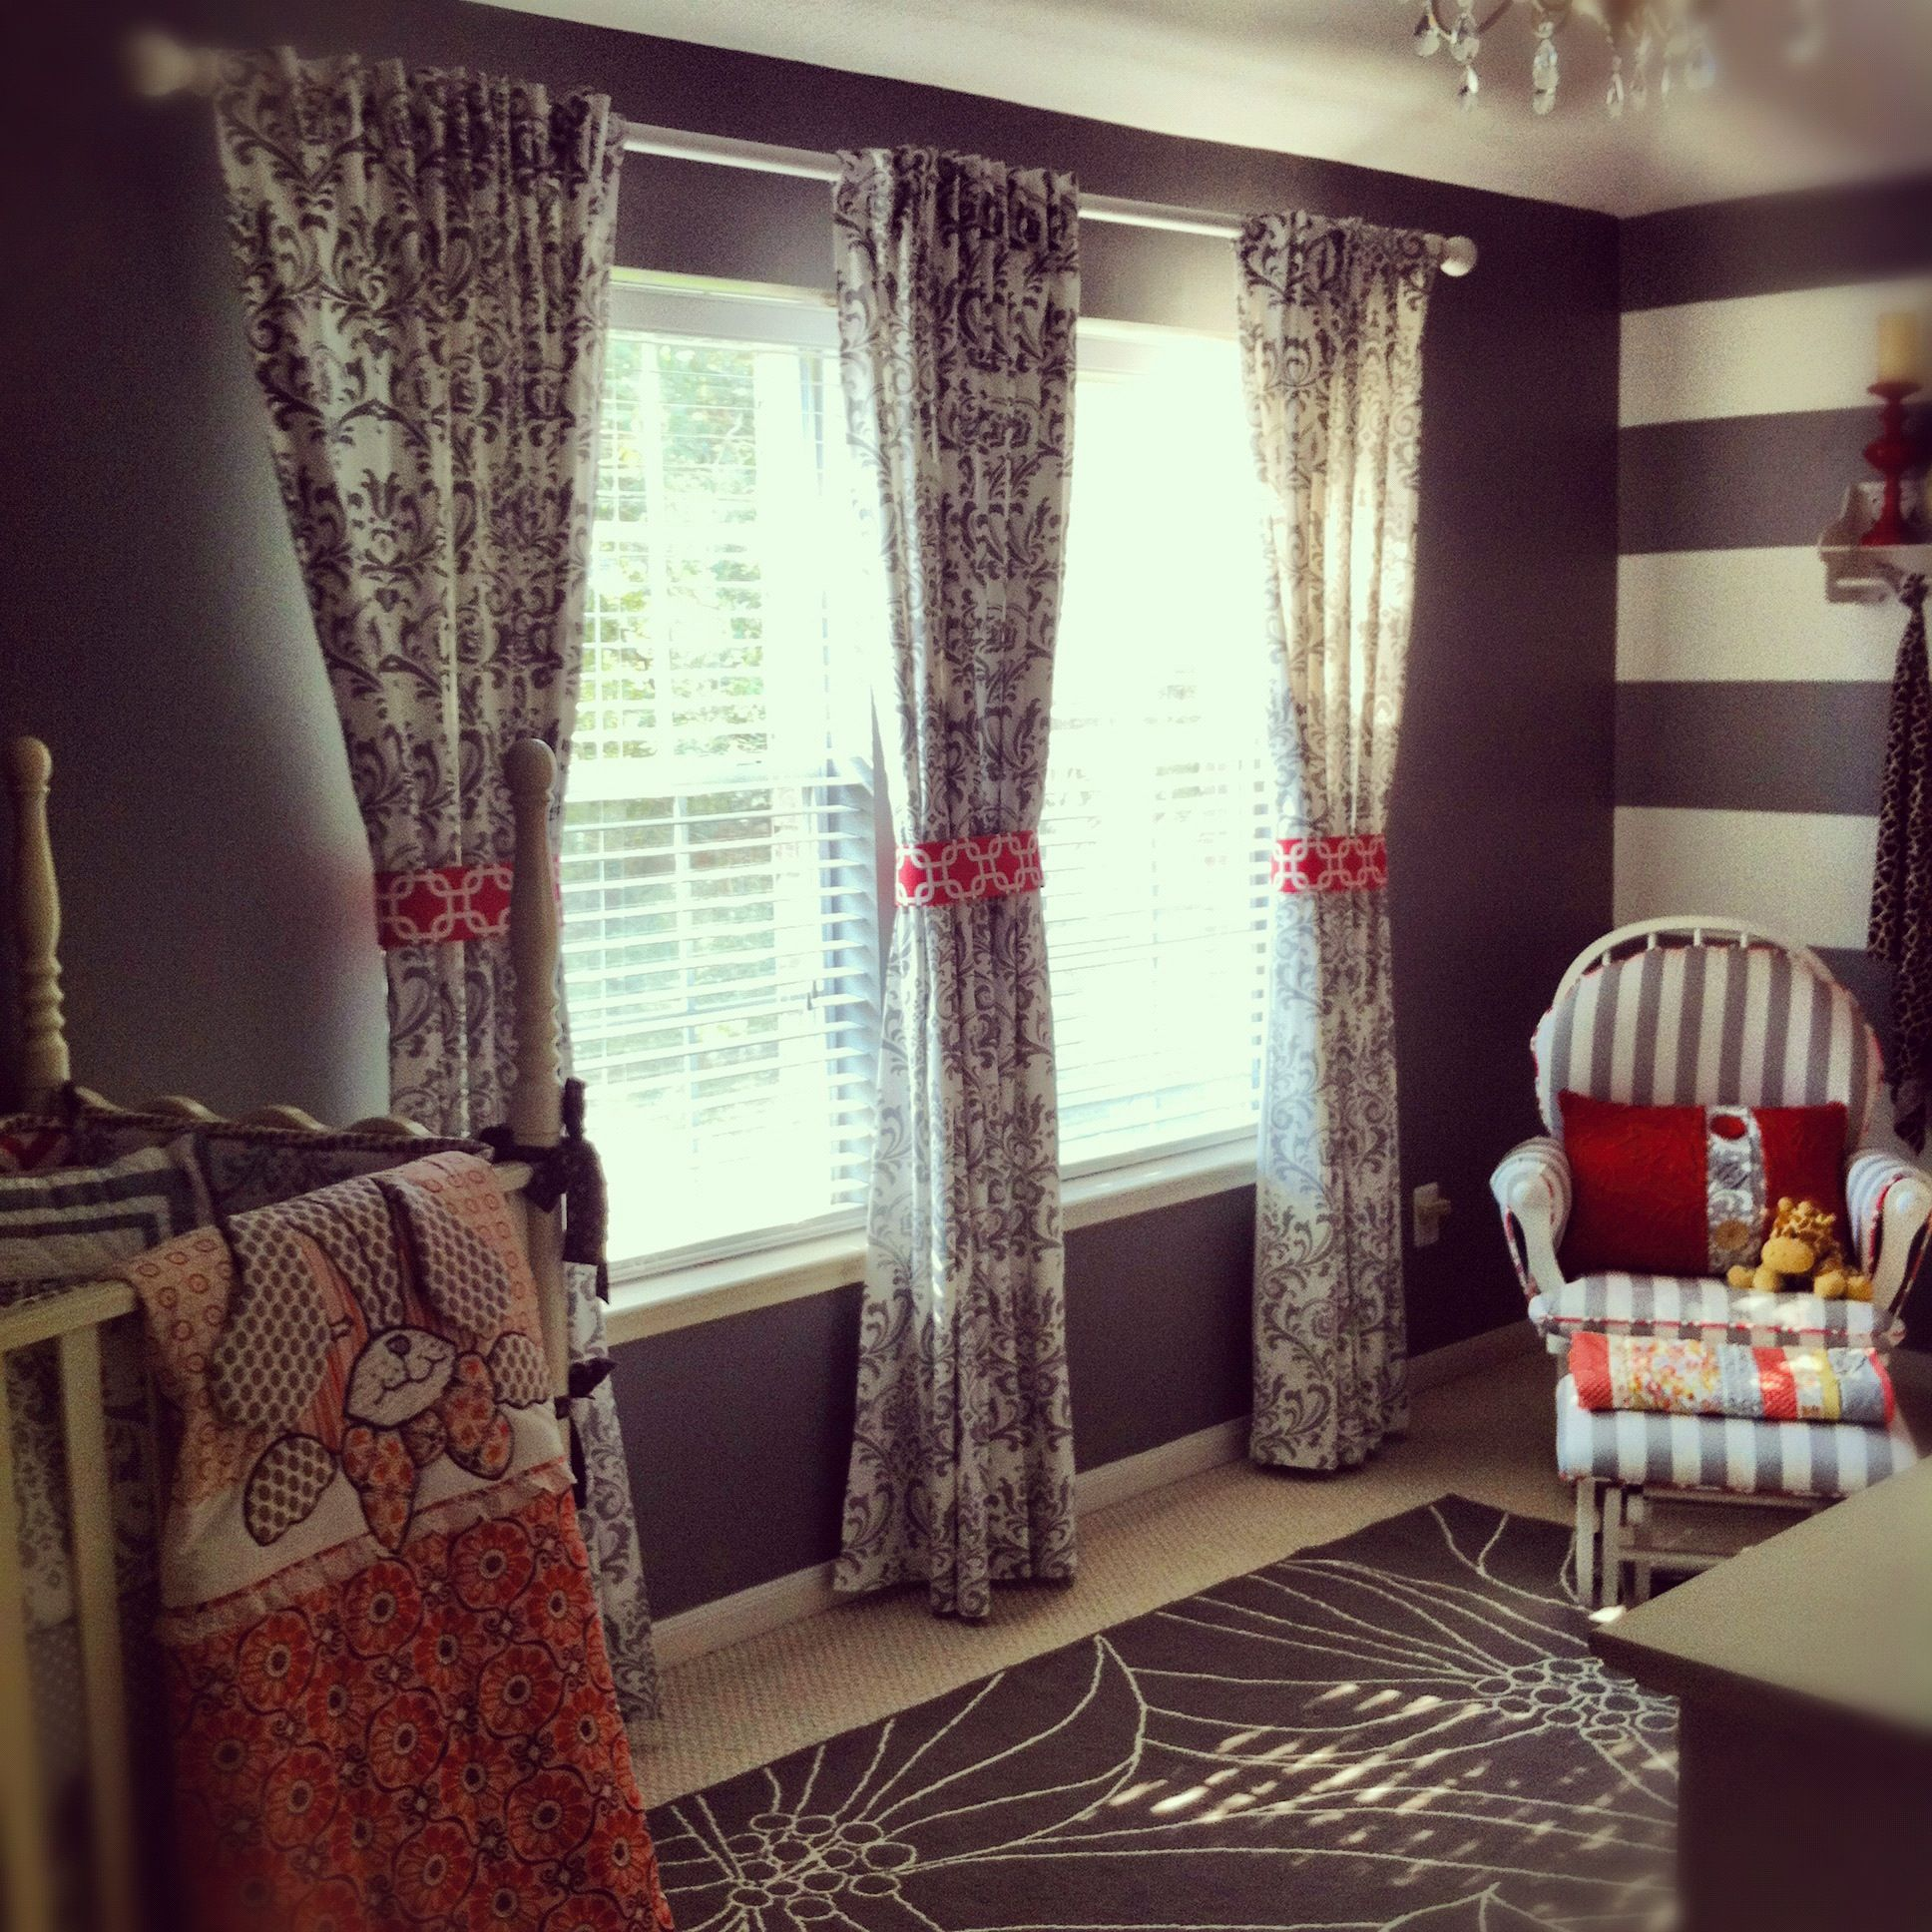 Coral Patterned Curtains Best Design Ideas